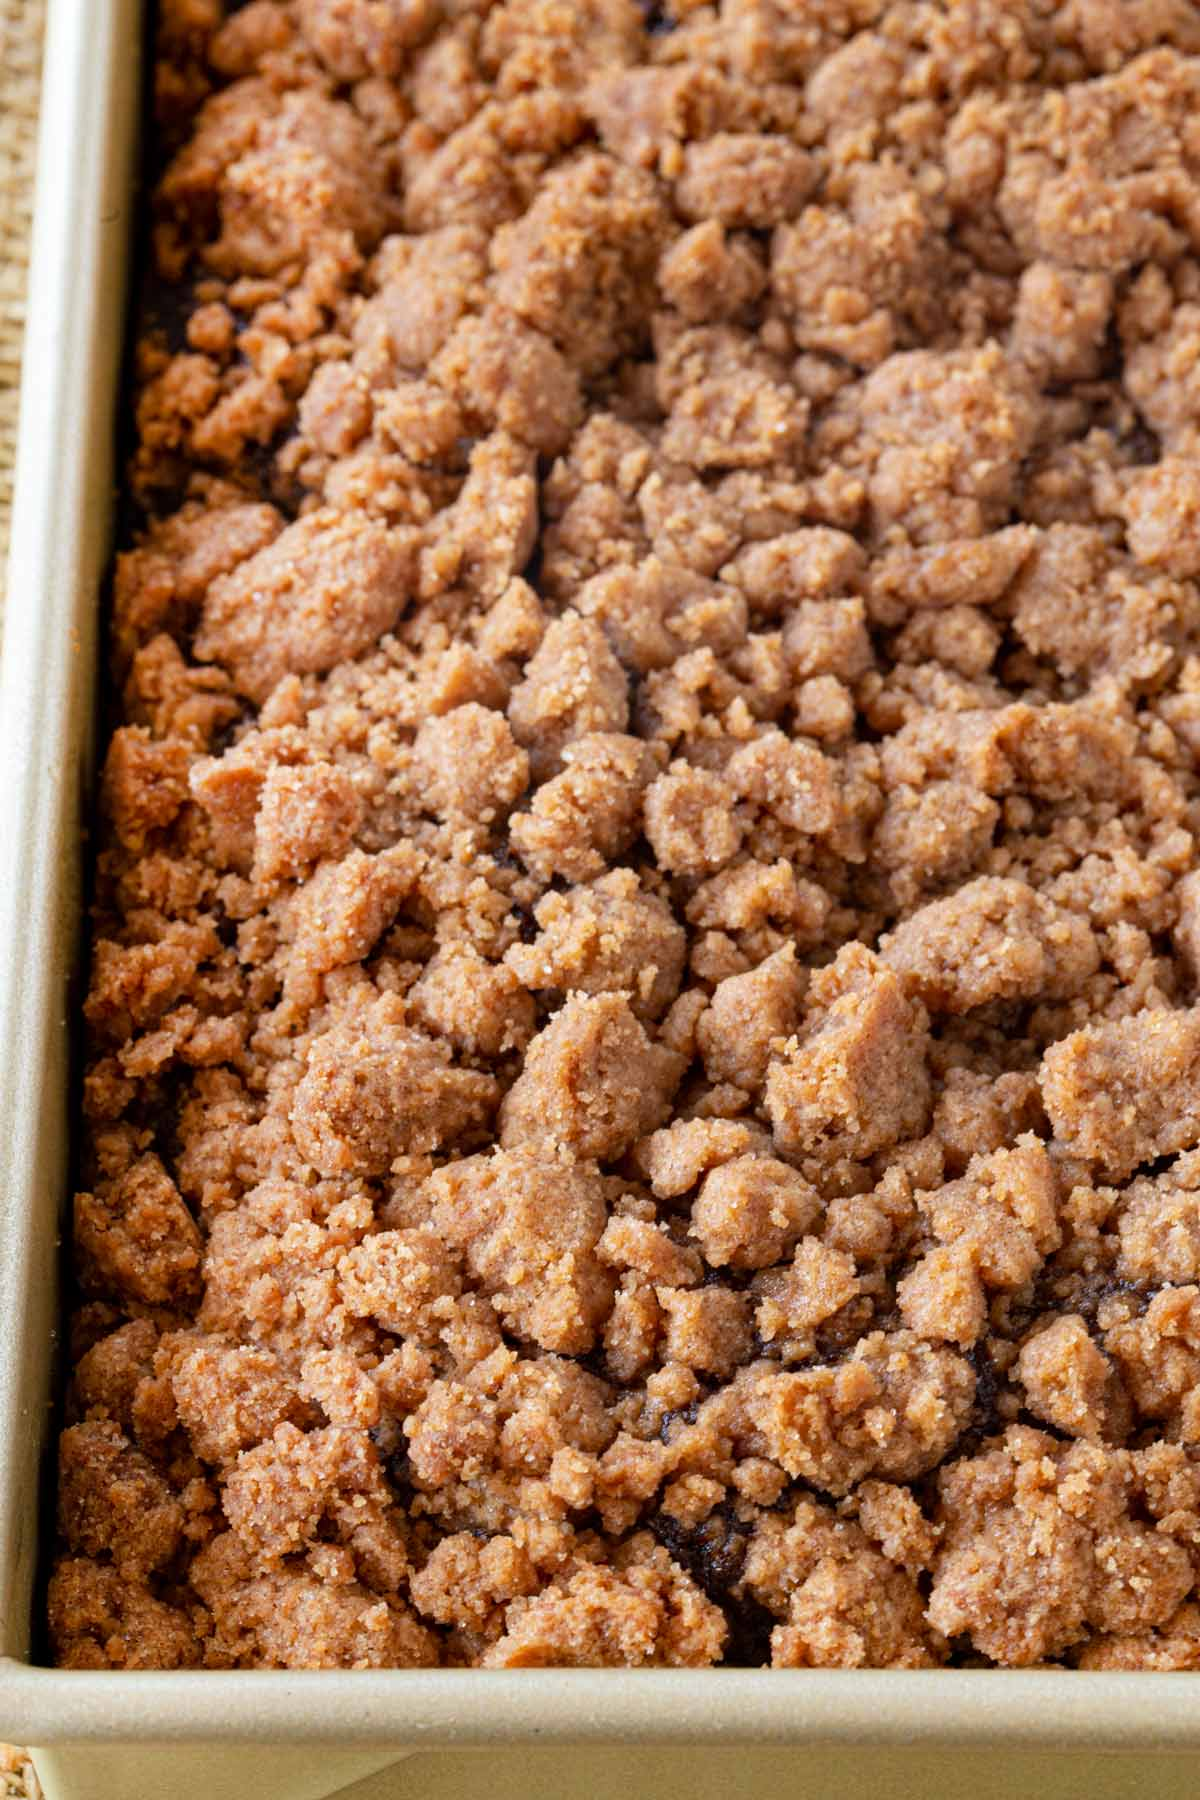 Gingerbread Crumb Cake in baking pan